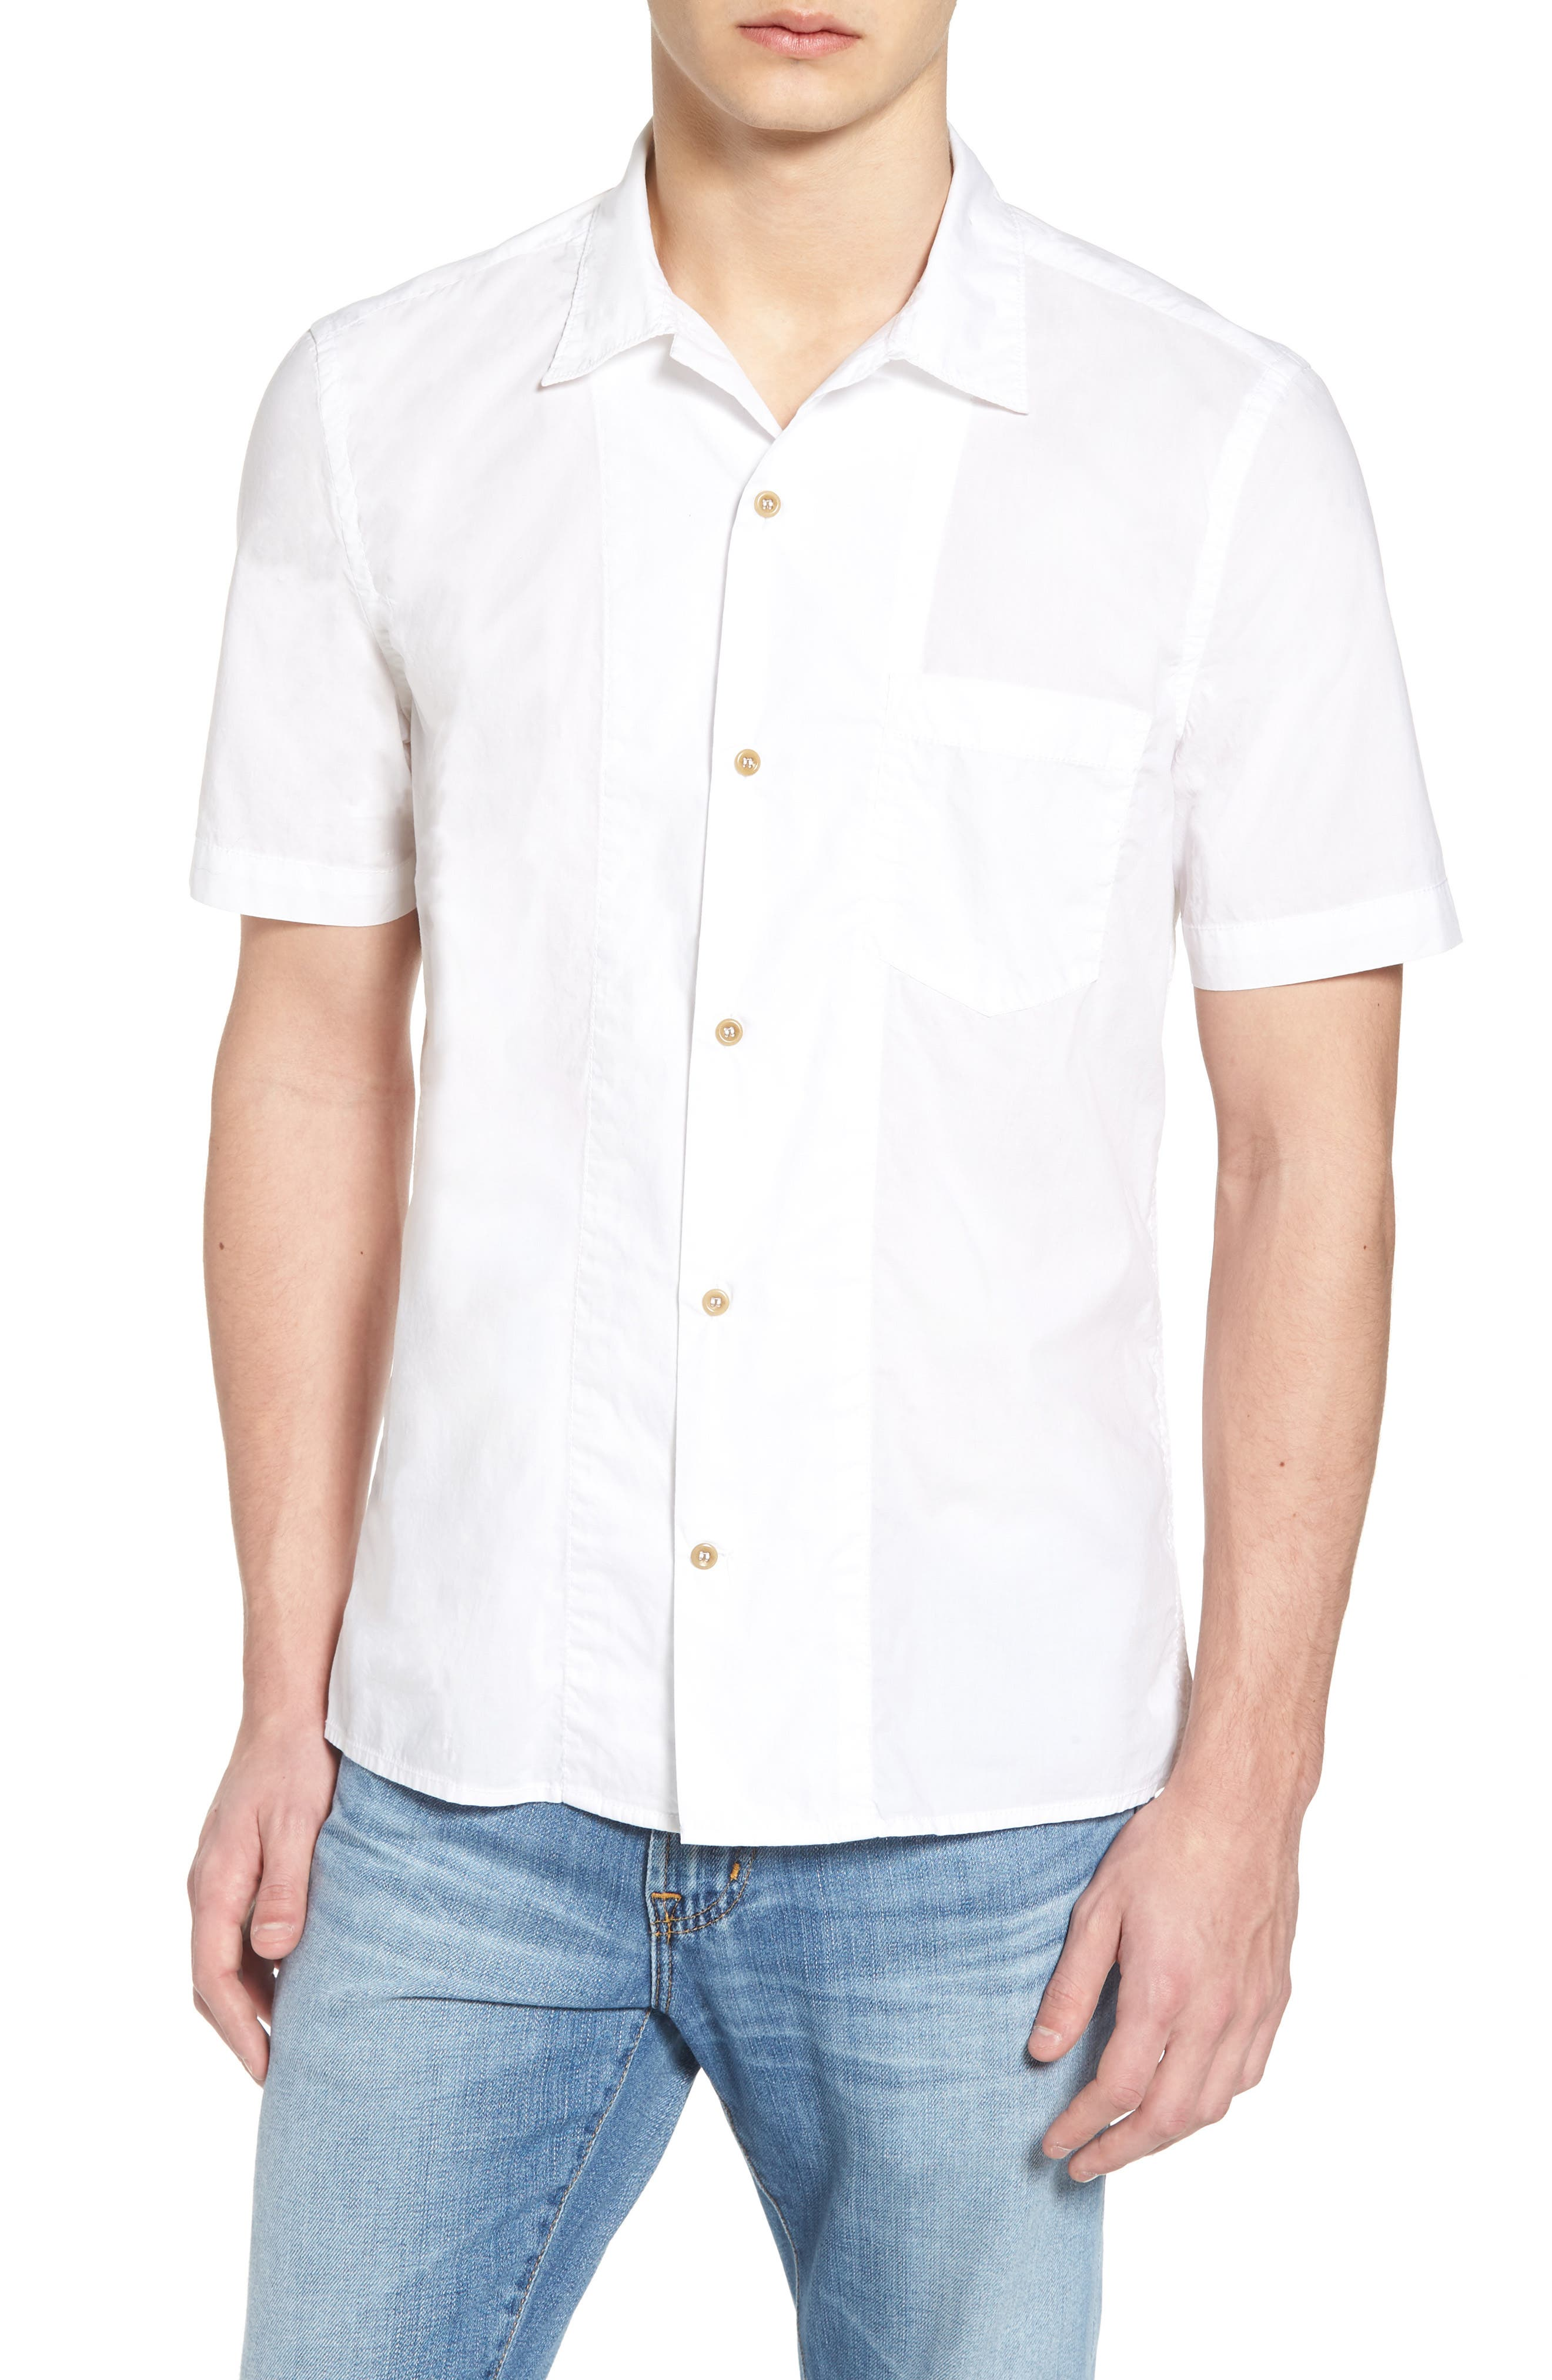 Alternate Image 1 Selected - French Connection Slim Fit Solid Sport Shirt